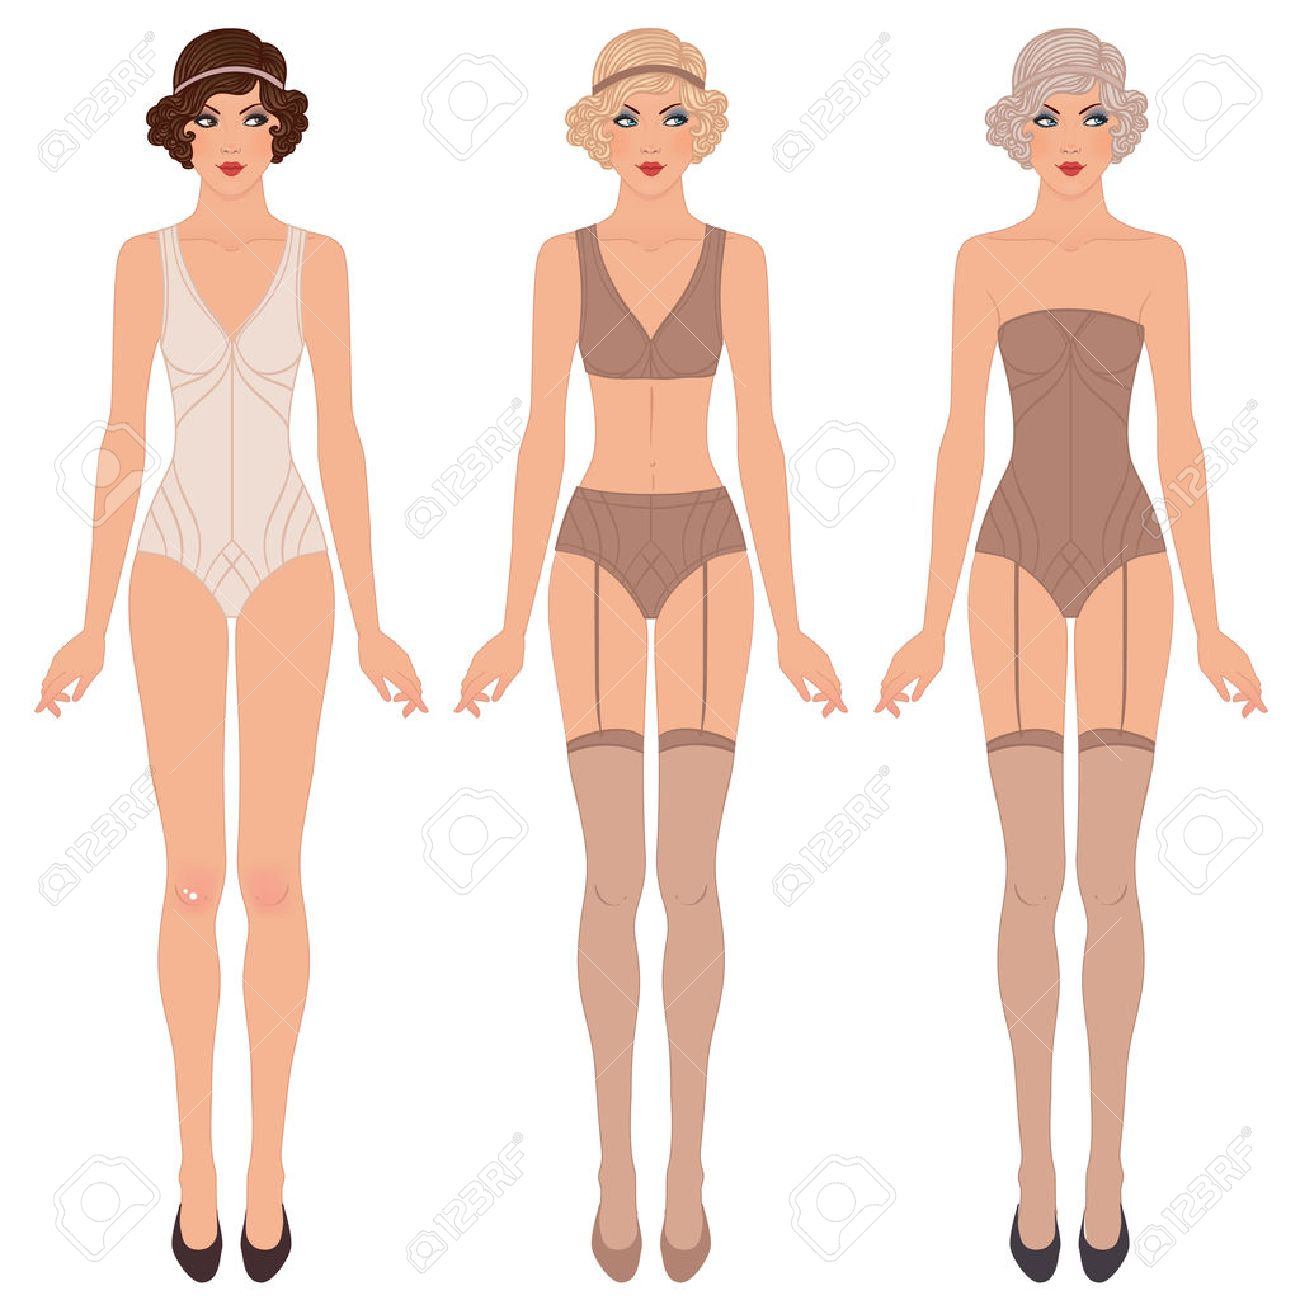 Paper doll stock photos pictures royalty free paper doll images flapper girl retro party invitation design vector illustration cute dress up paper doll pronofoot35fo Gallery